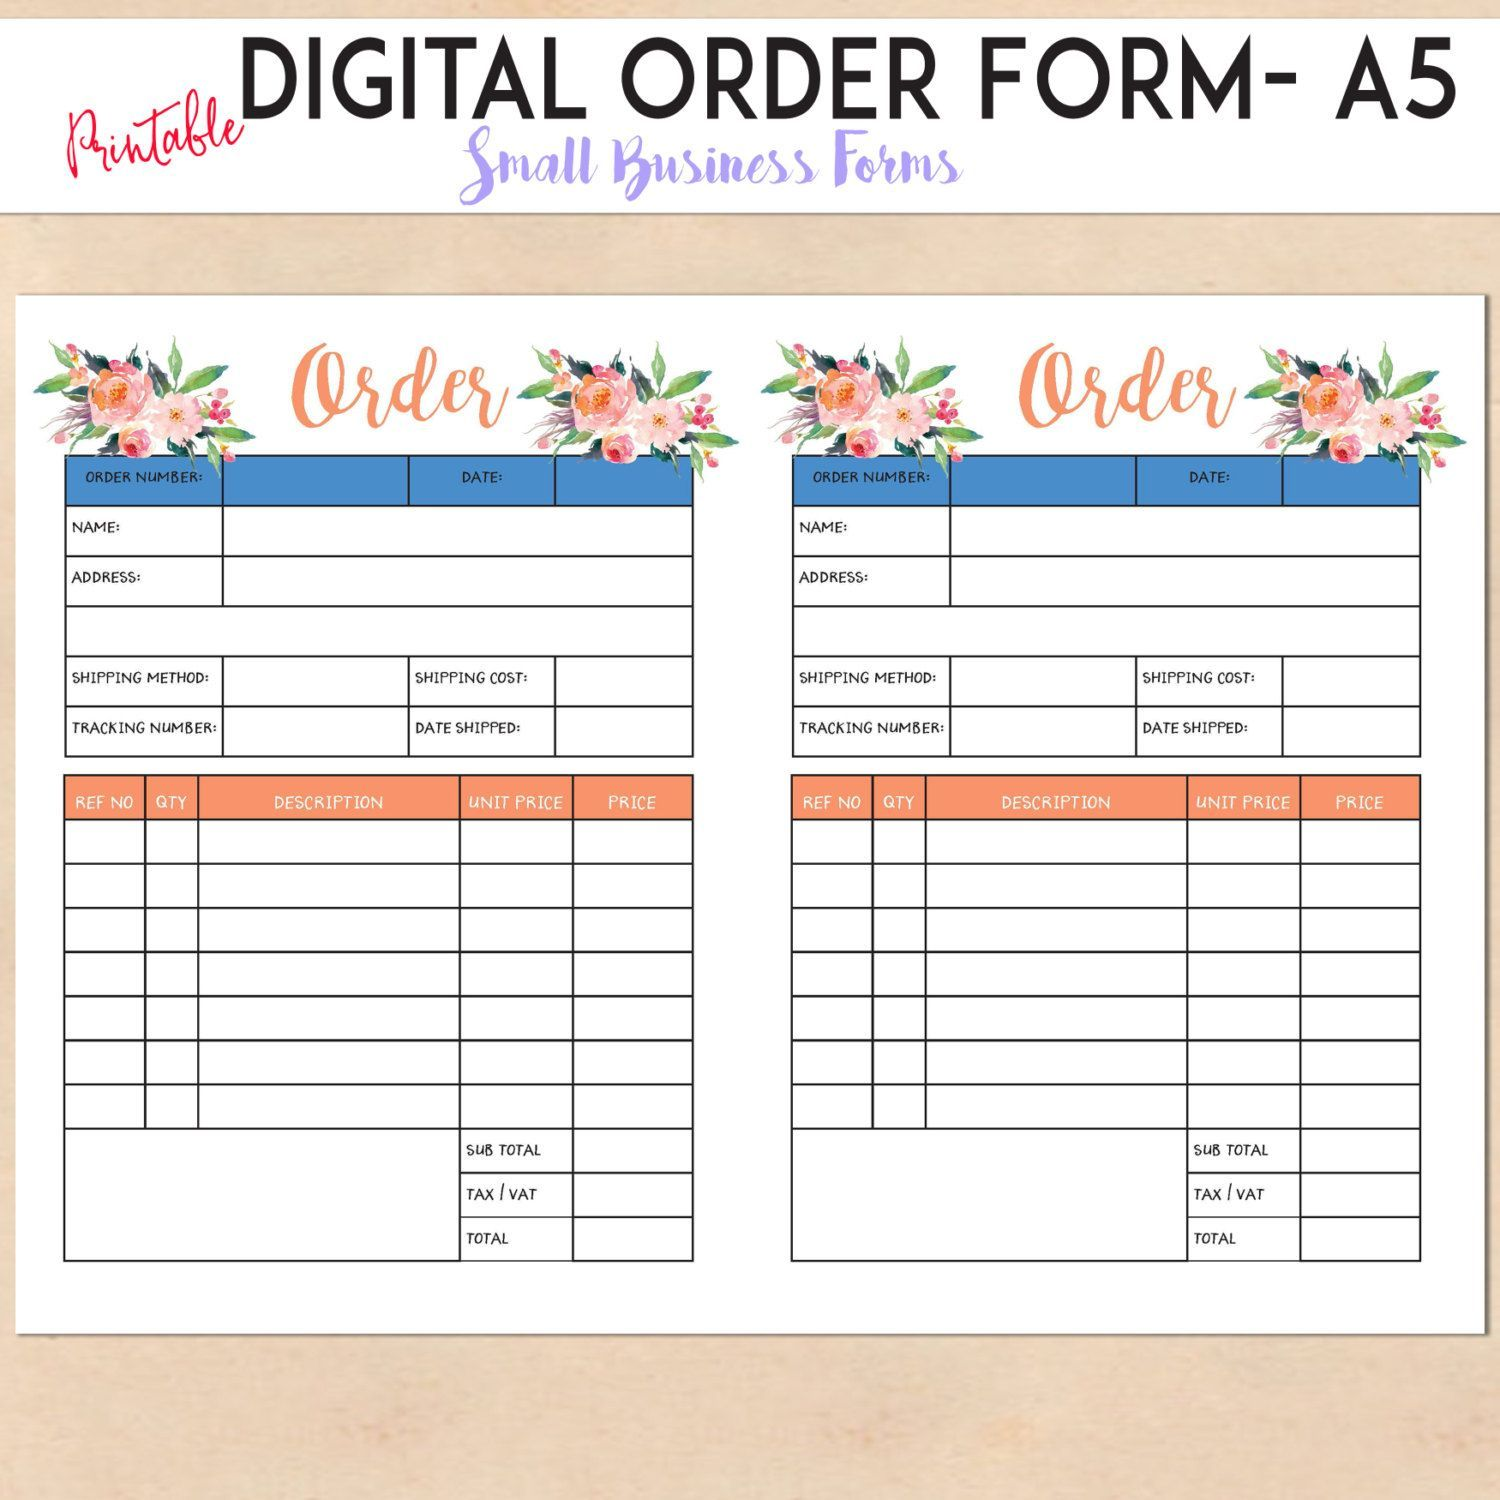 Small business forms templates 28 images small news to gow small business forms templates 28 images small cheaphphosting Images